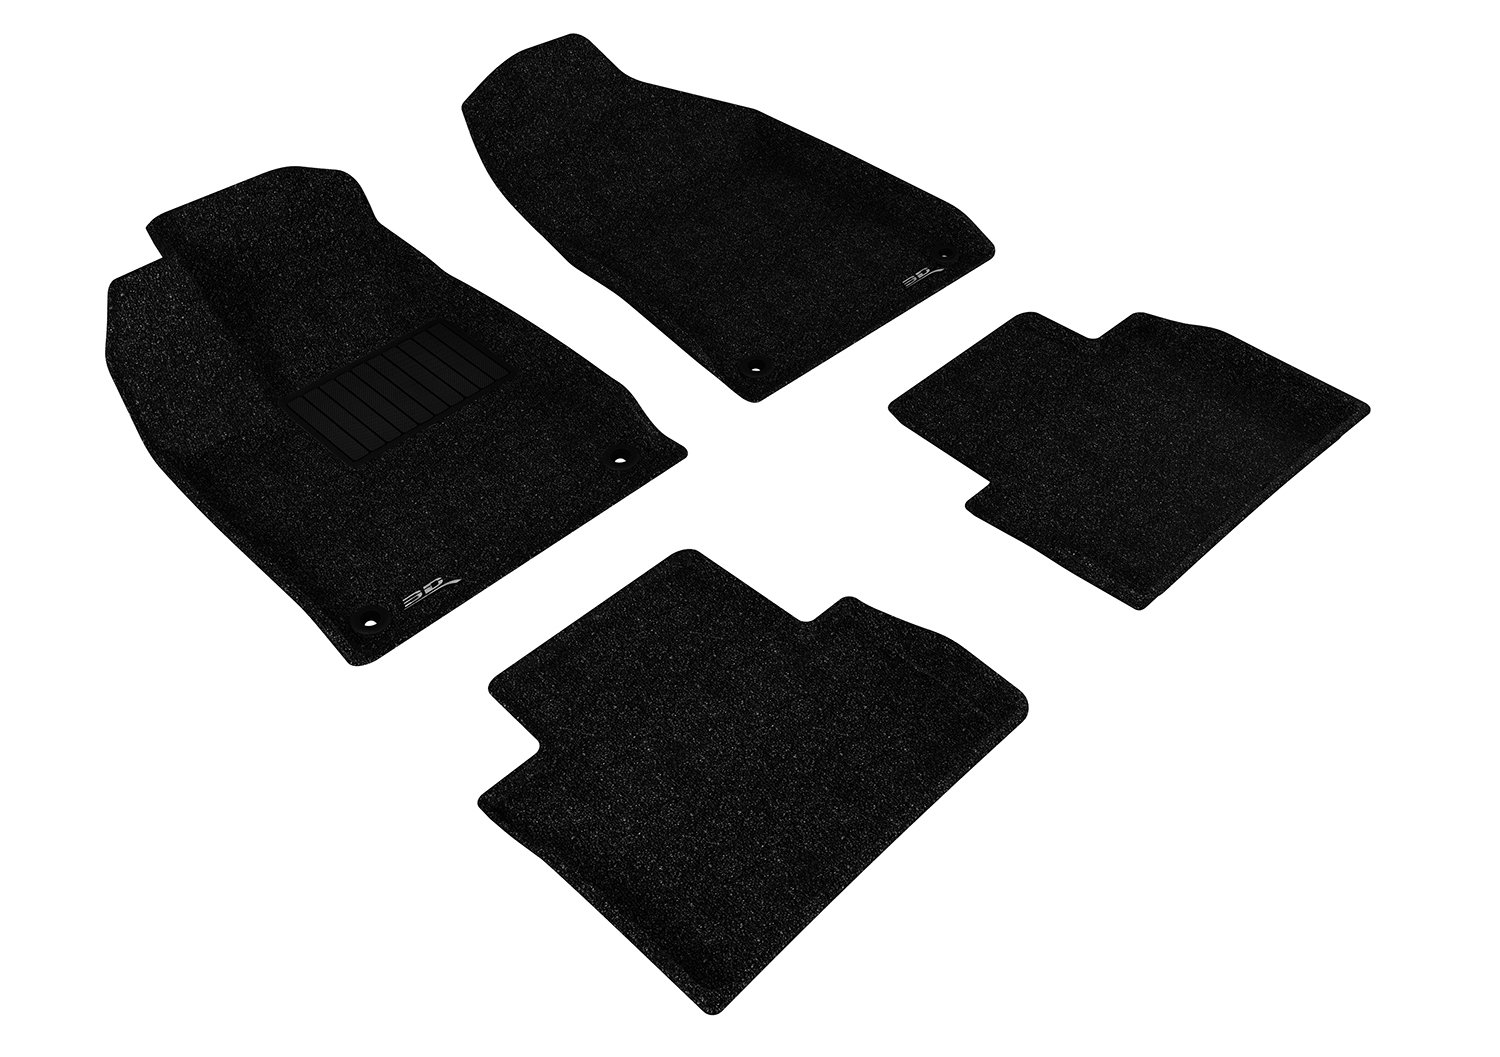 Classic Carpet Black 3D MAXpider Second Row Custom Fit All-Weather Floor Mat for Select Chrysler 200 Models L1CY00322209